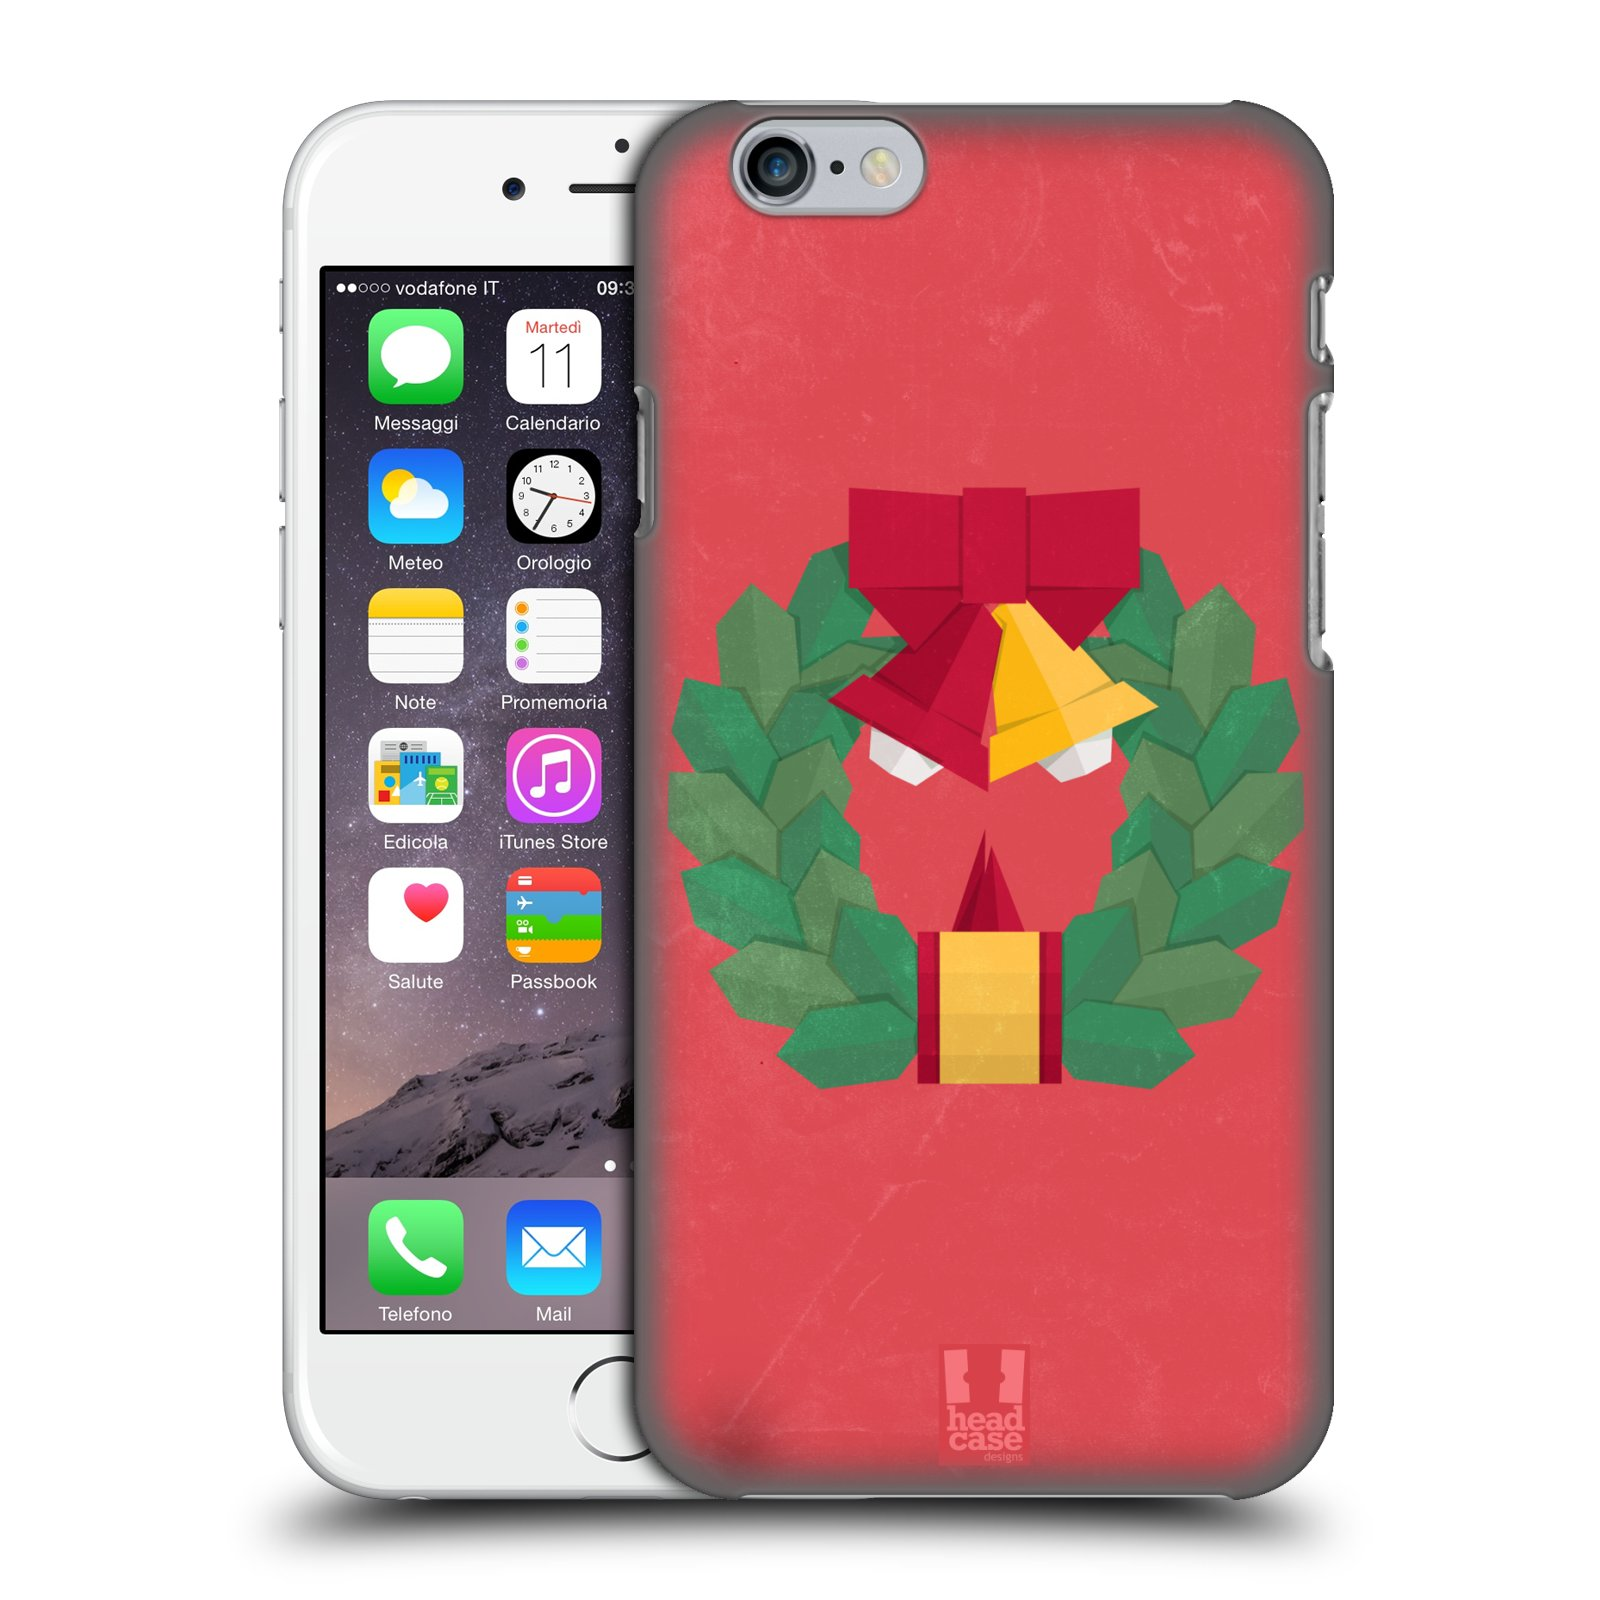 HEAD-CASE-DESIGNS-NATALE-ORIGAMI-COVER-RETRO-RIGIDA-PER-APPLE-iPHONE-TELEFONI